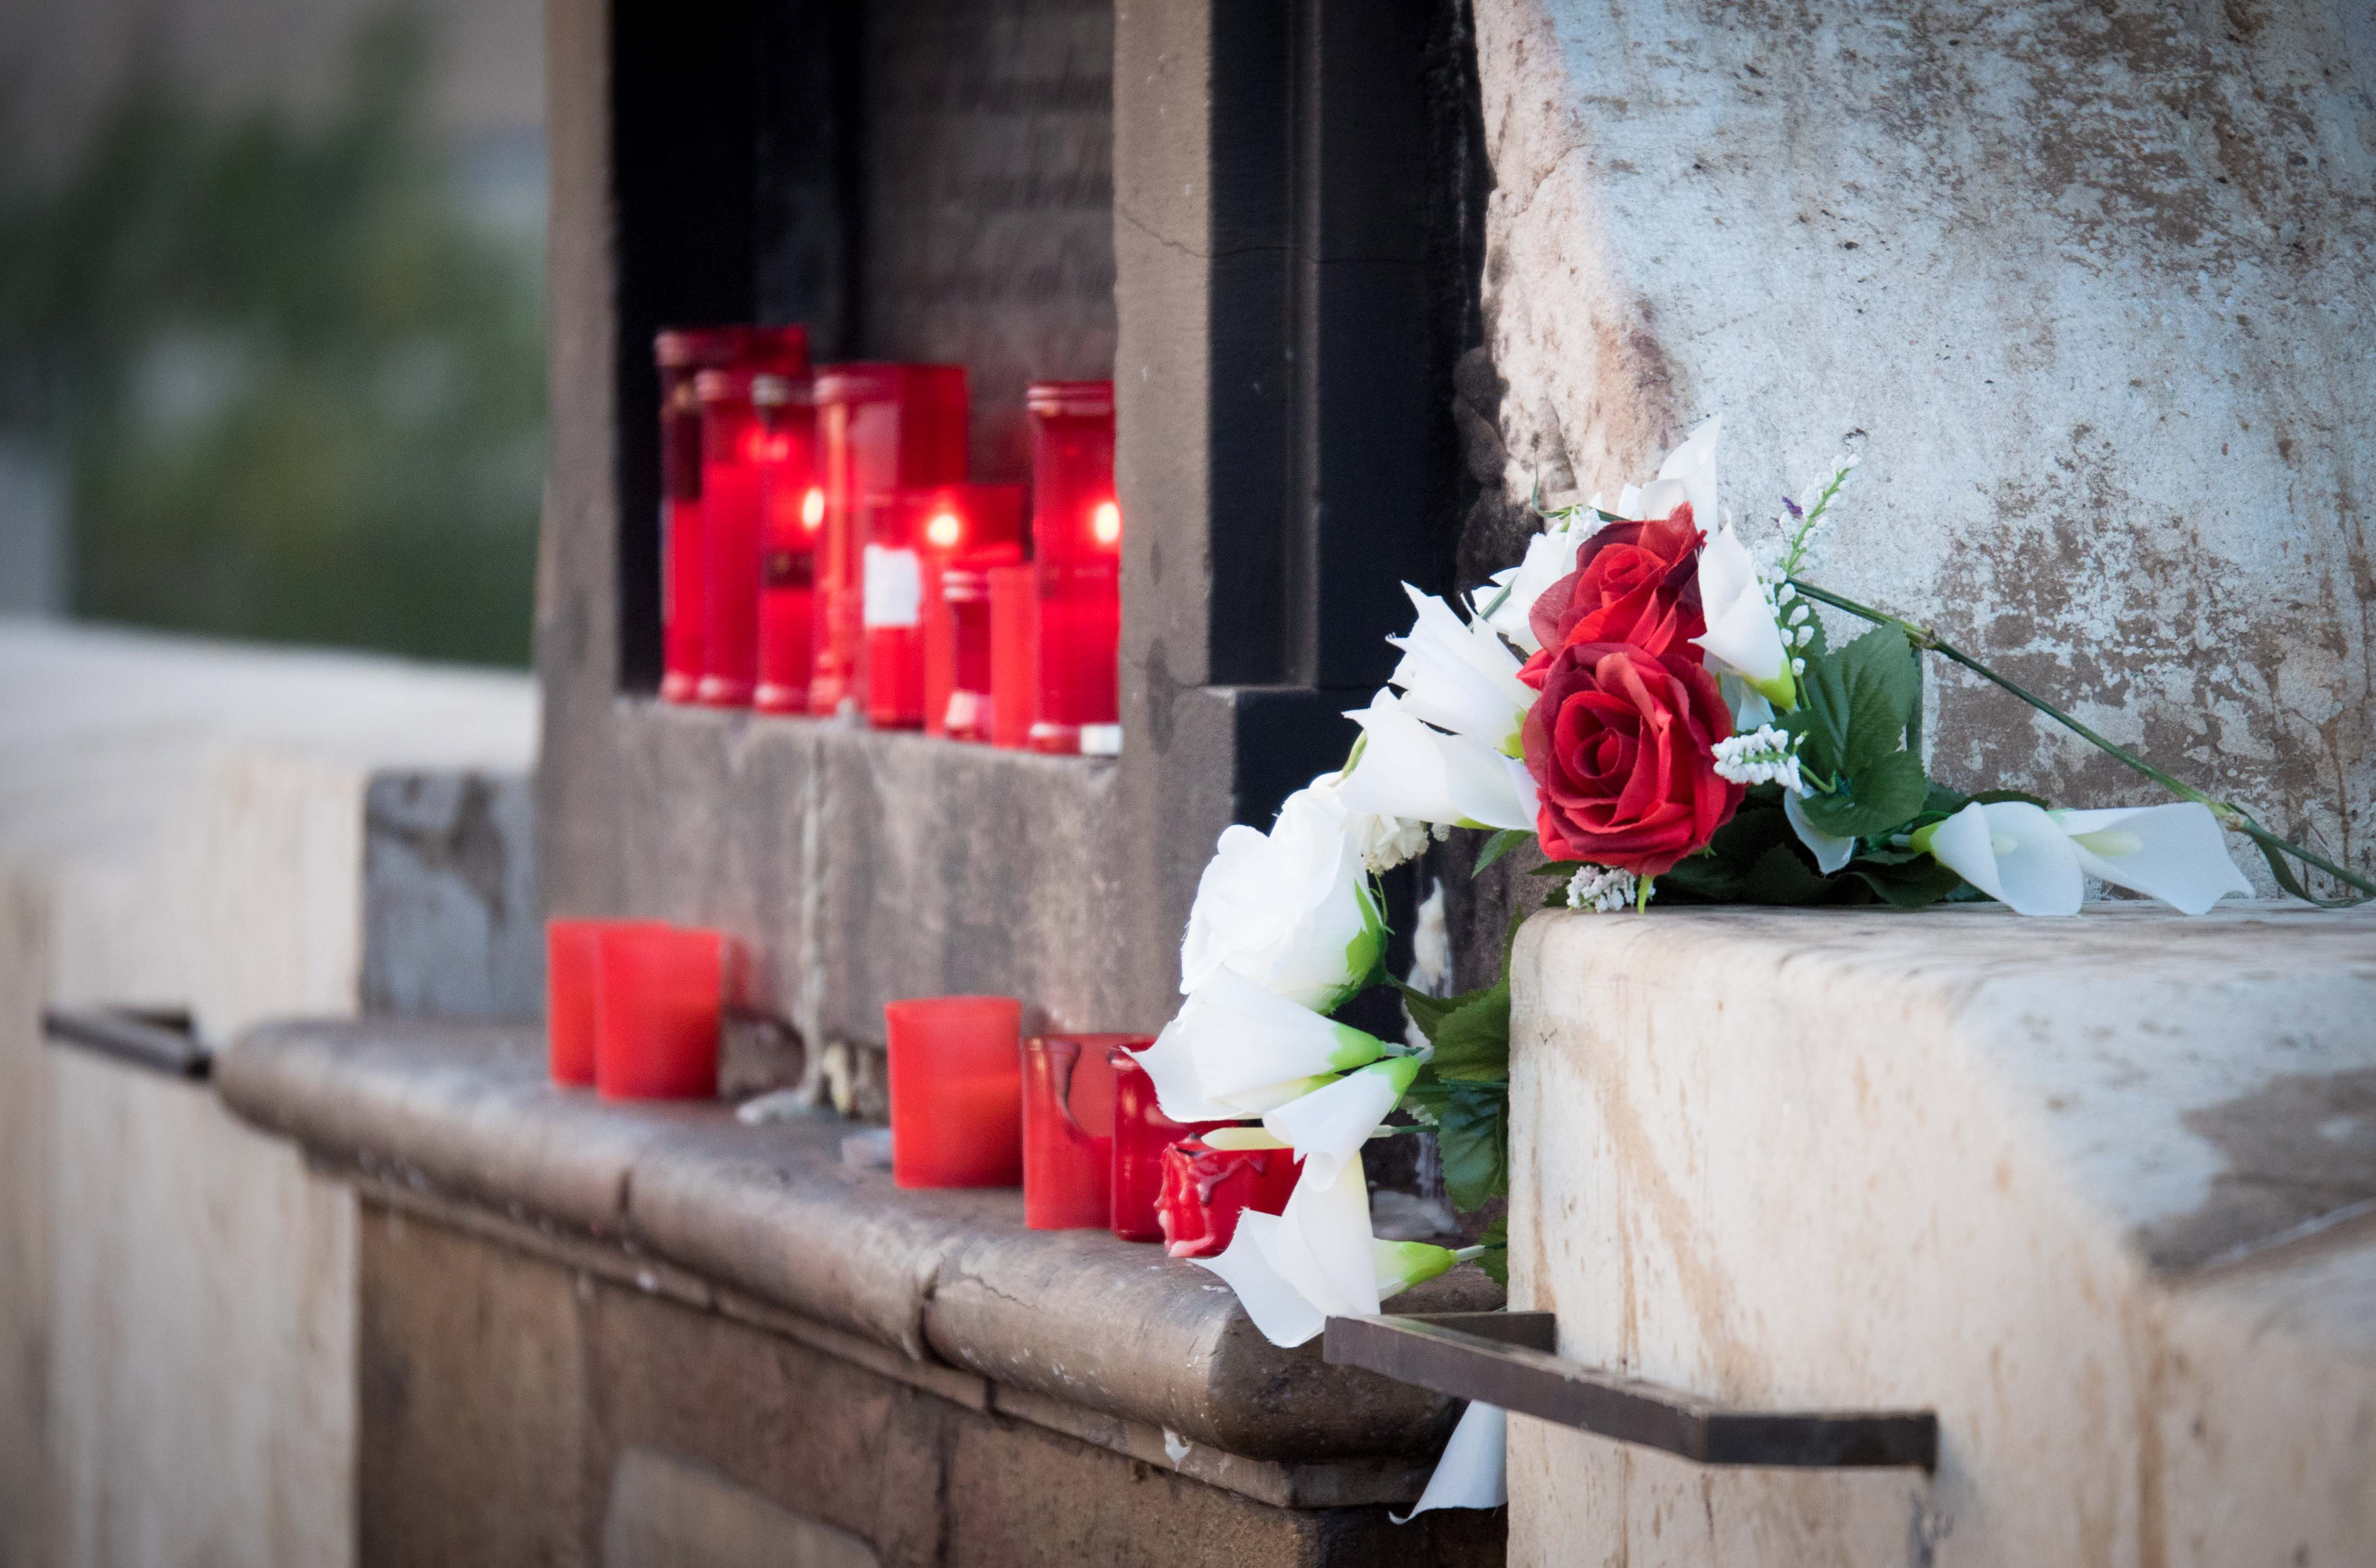 Flowers and Candles to the VirginMary